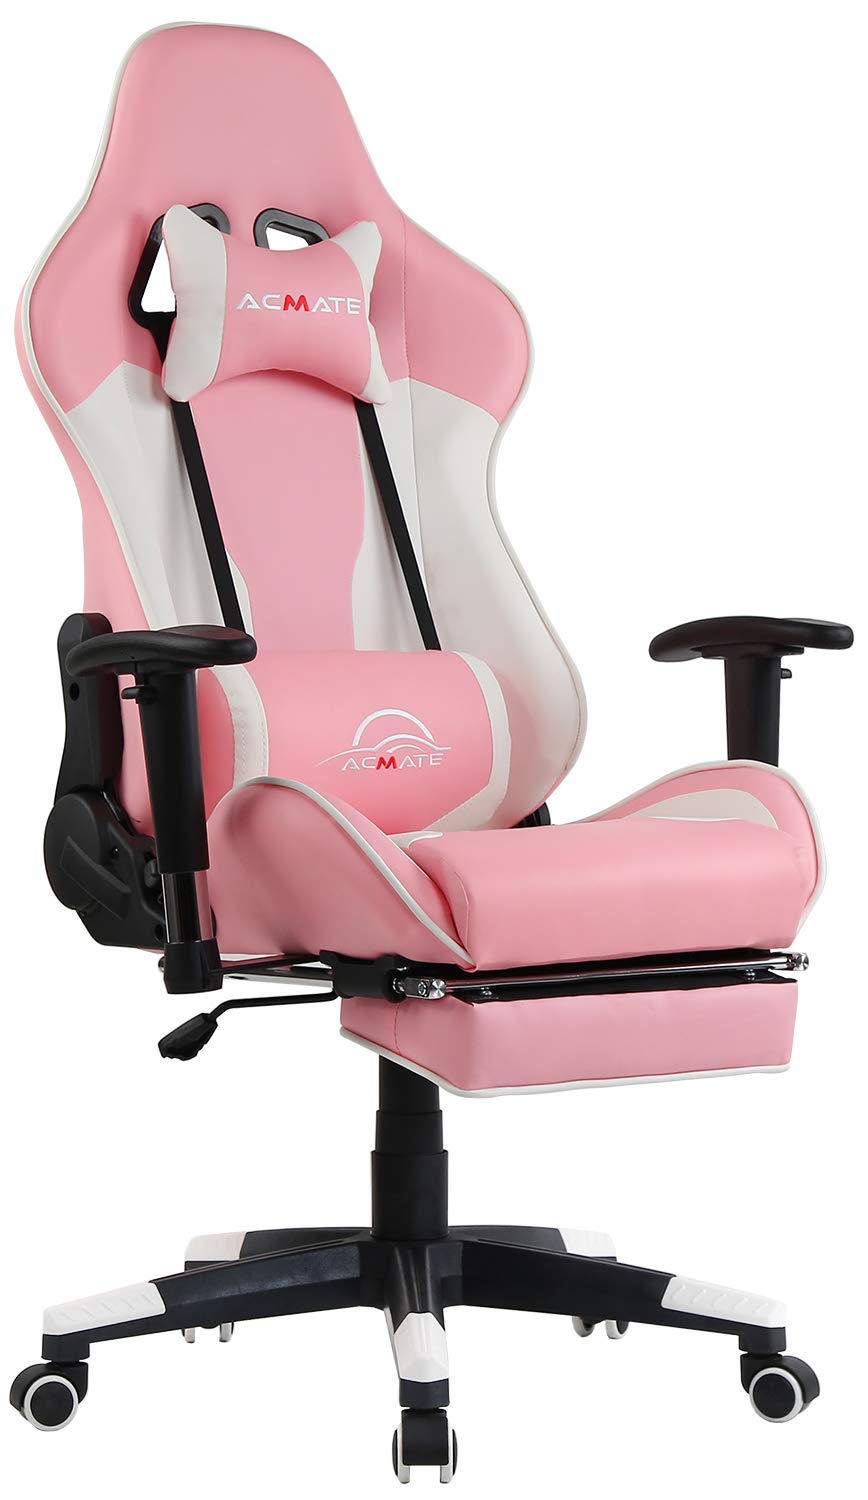 Acmate Girl Gaming Chair Massage Gaming Computer Chair with Footrest Reclining Home Office Chair Racing Style Gamer Chair High Back Gaming Desk Chair with Headrest and Lumbar Support(Pink/White) by ACMATE